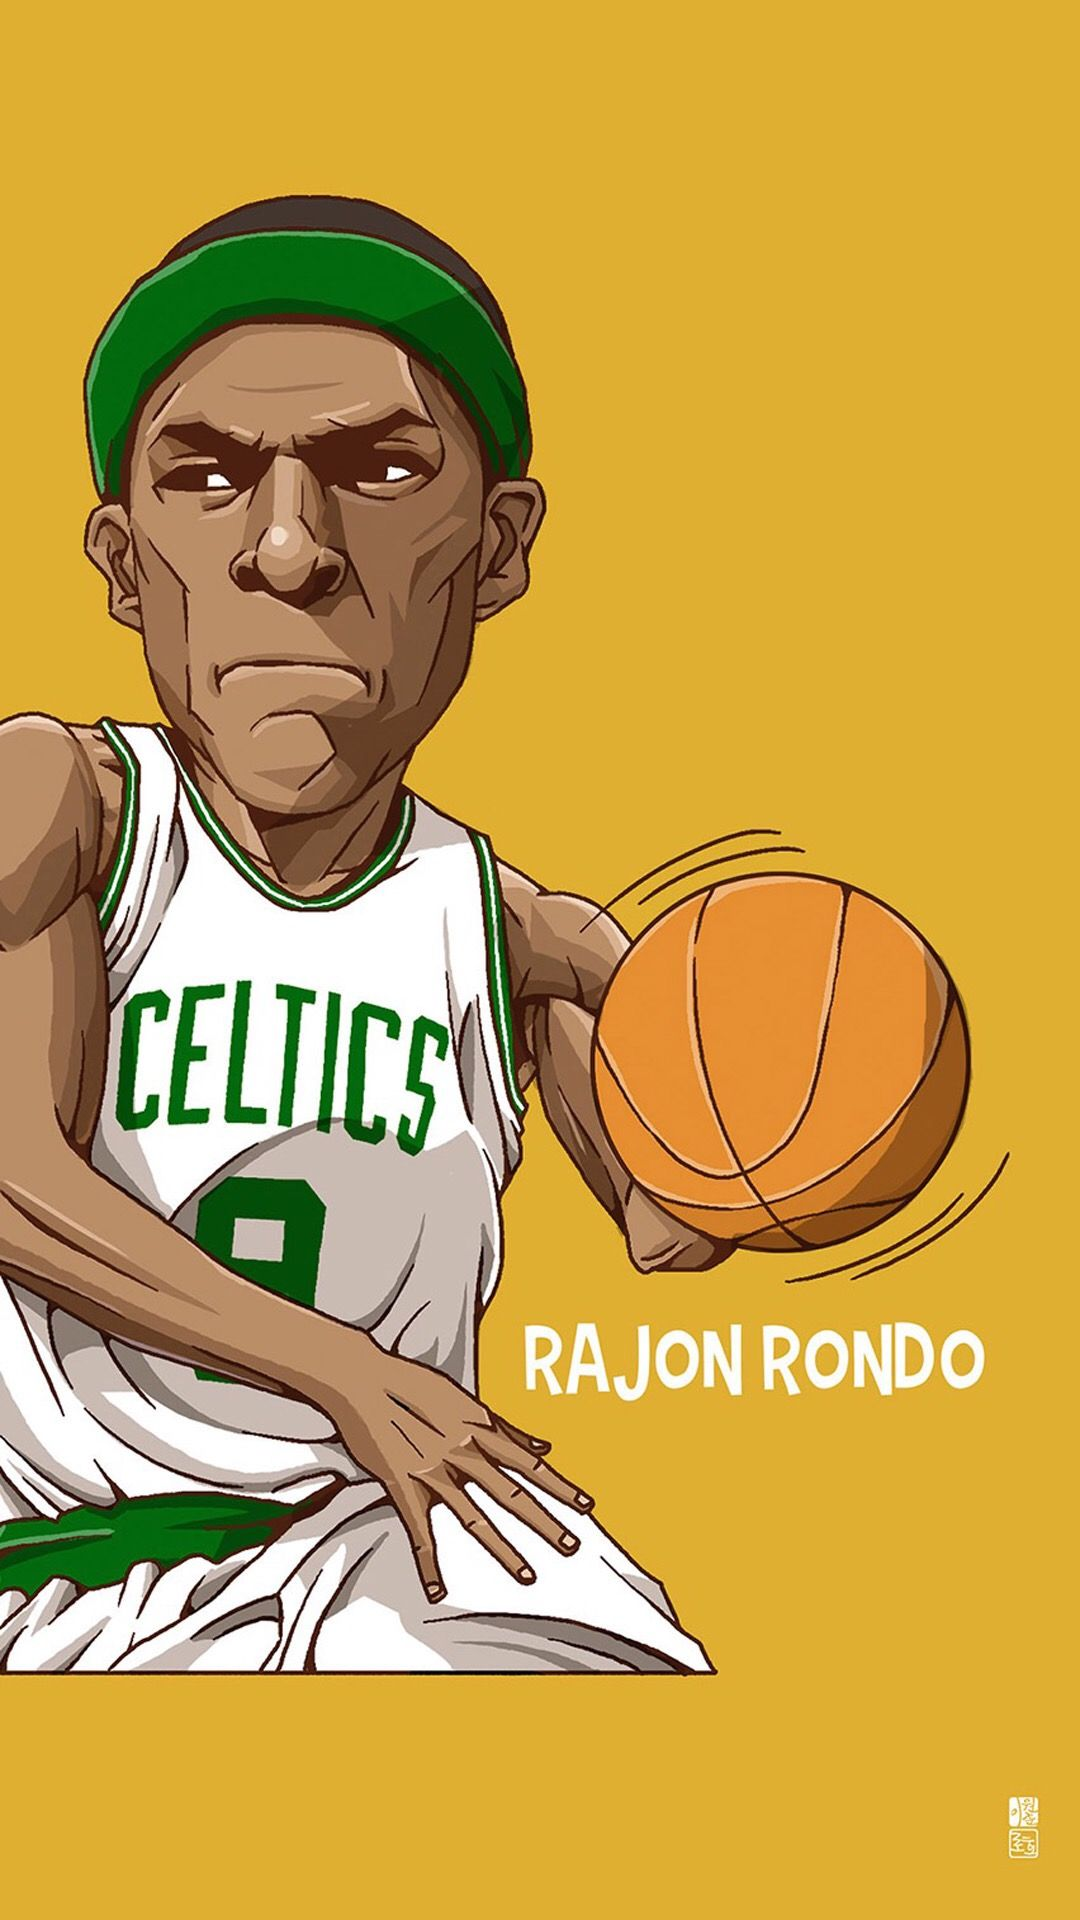 Rajon Rondo Tap To See Collection Of Famous Nba Basketball Players